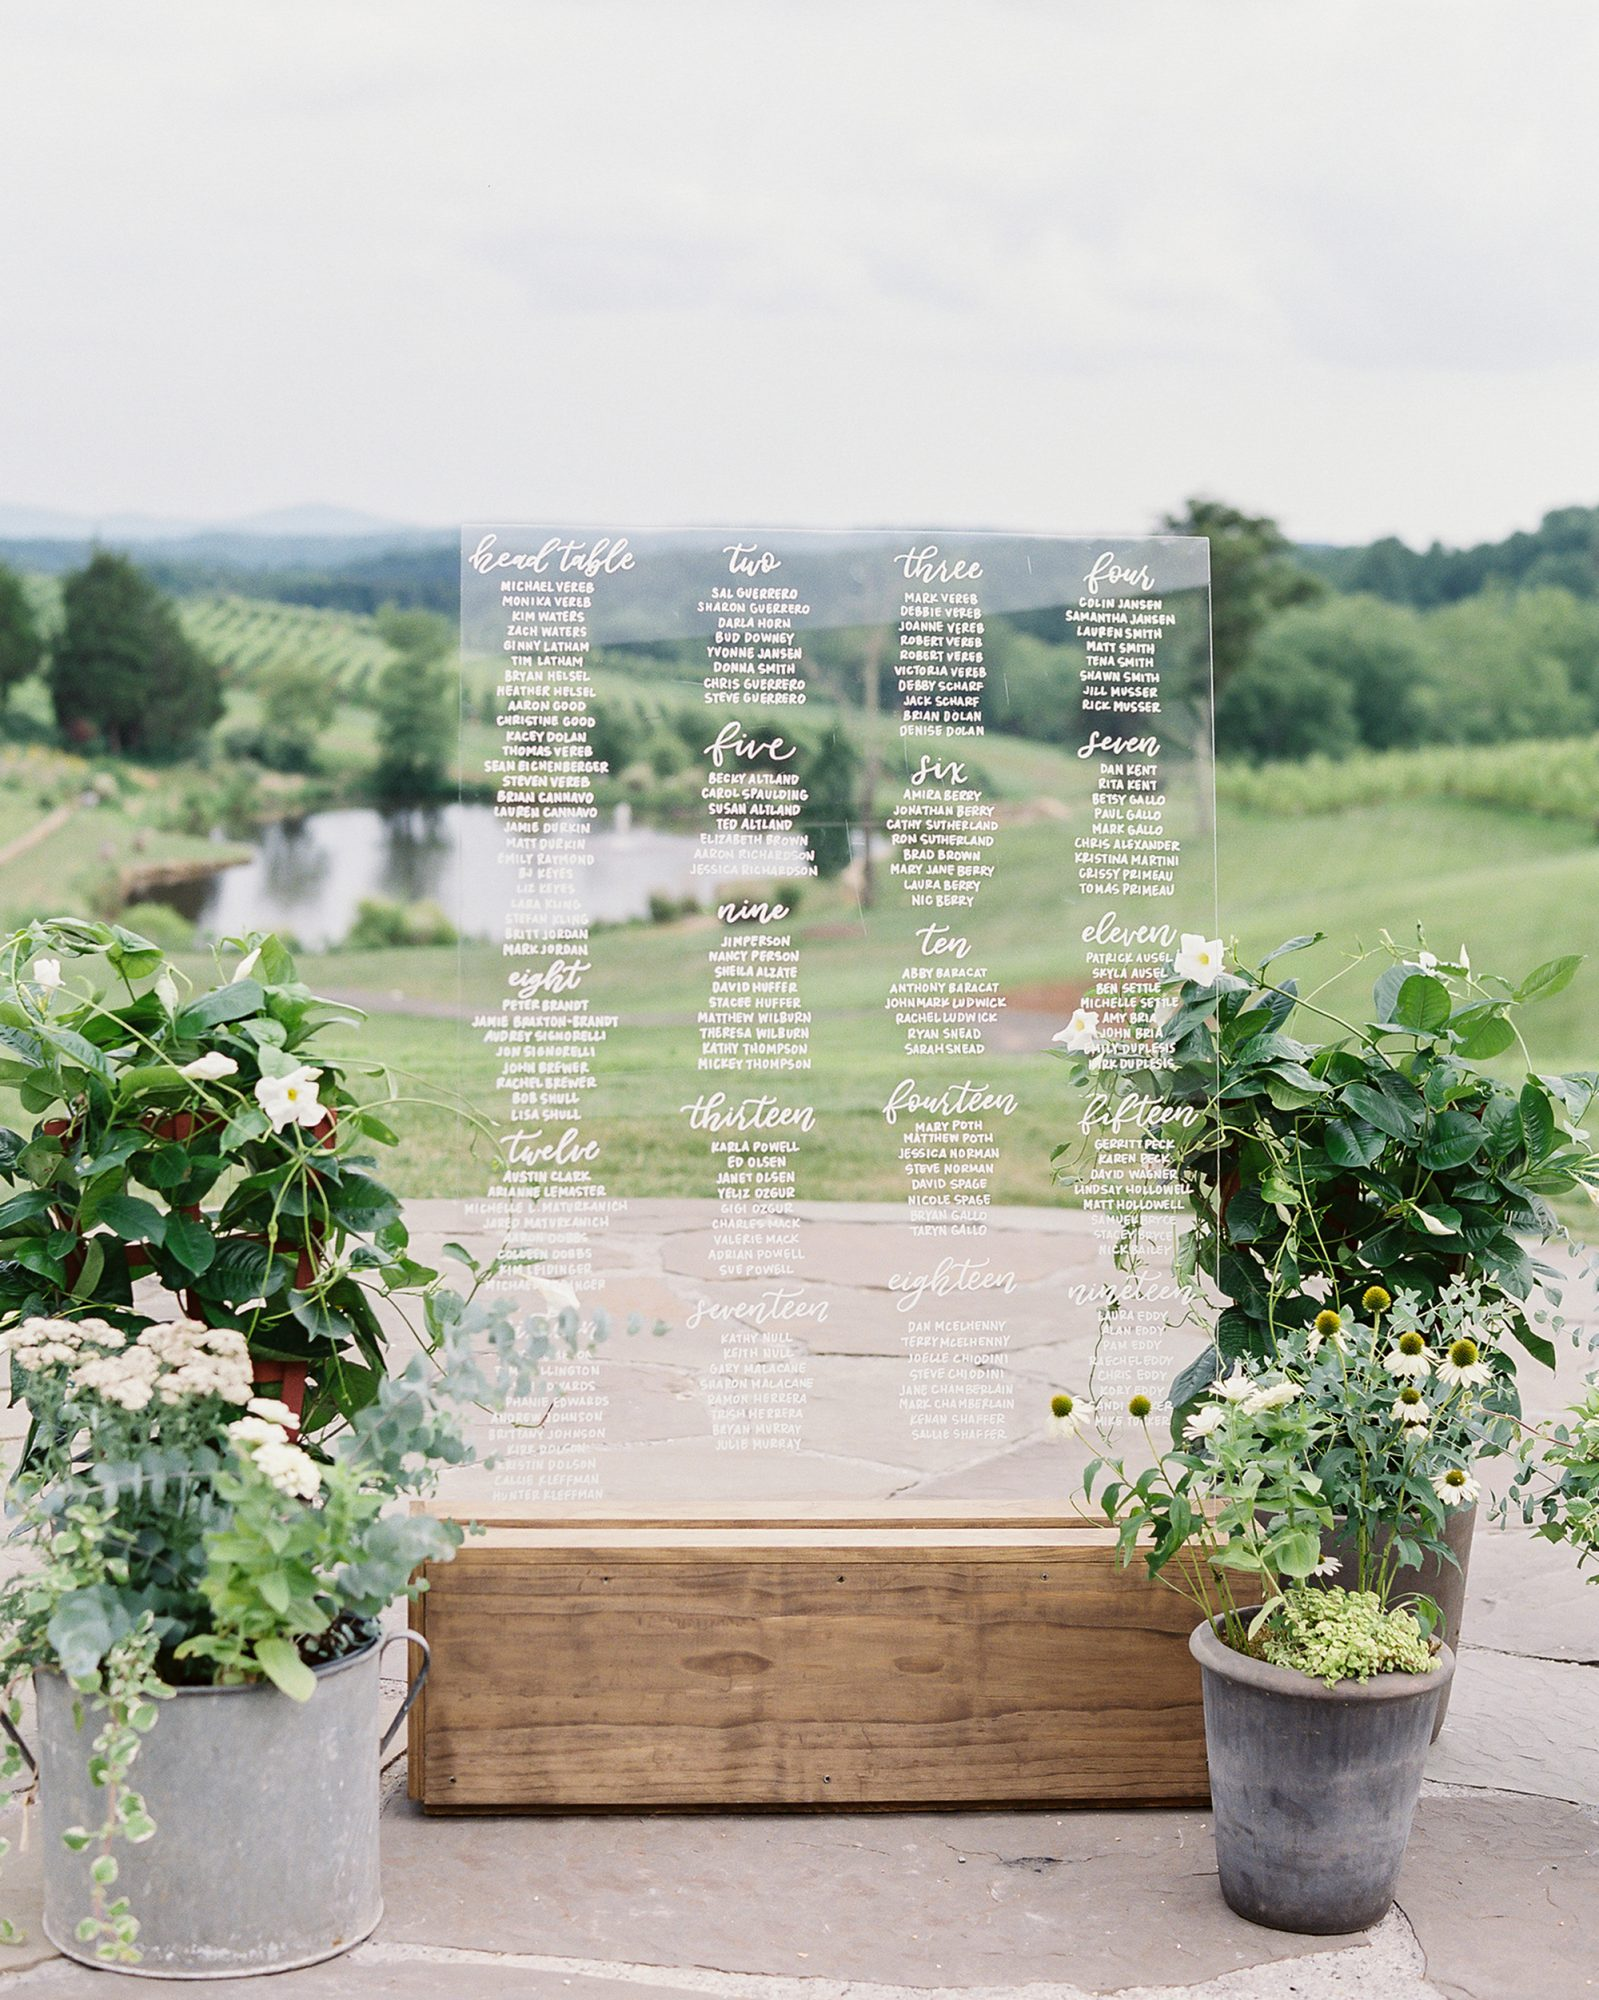 acrylic seating chart featuring vineyard in background